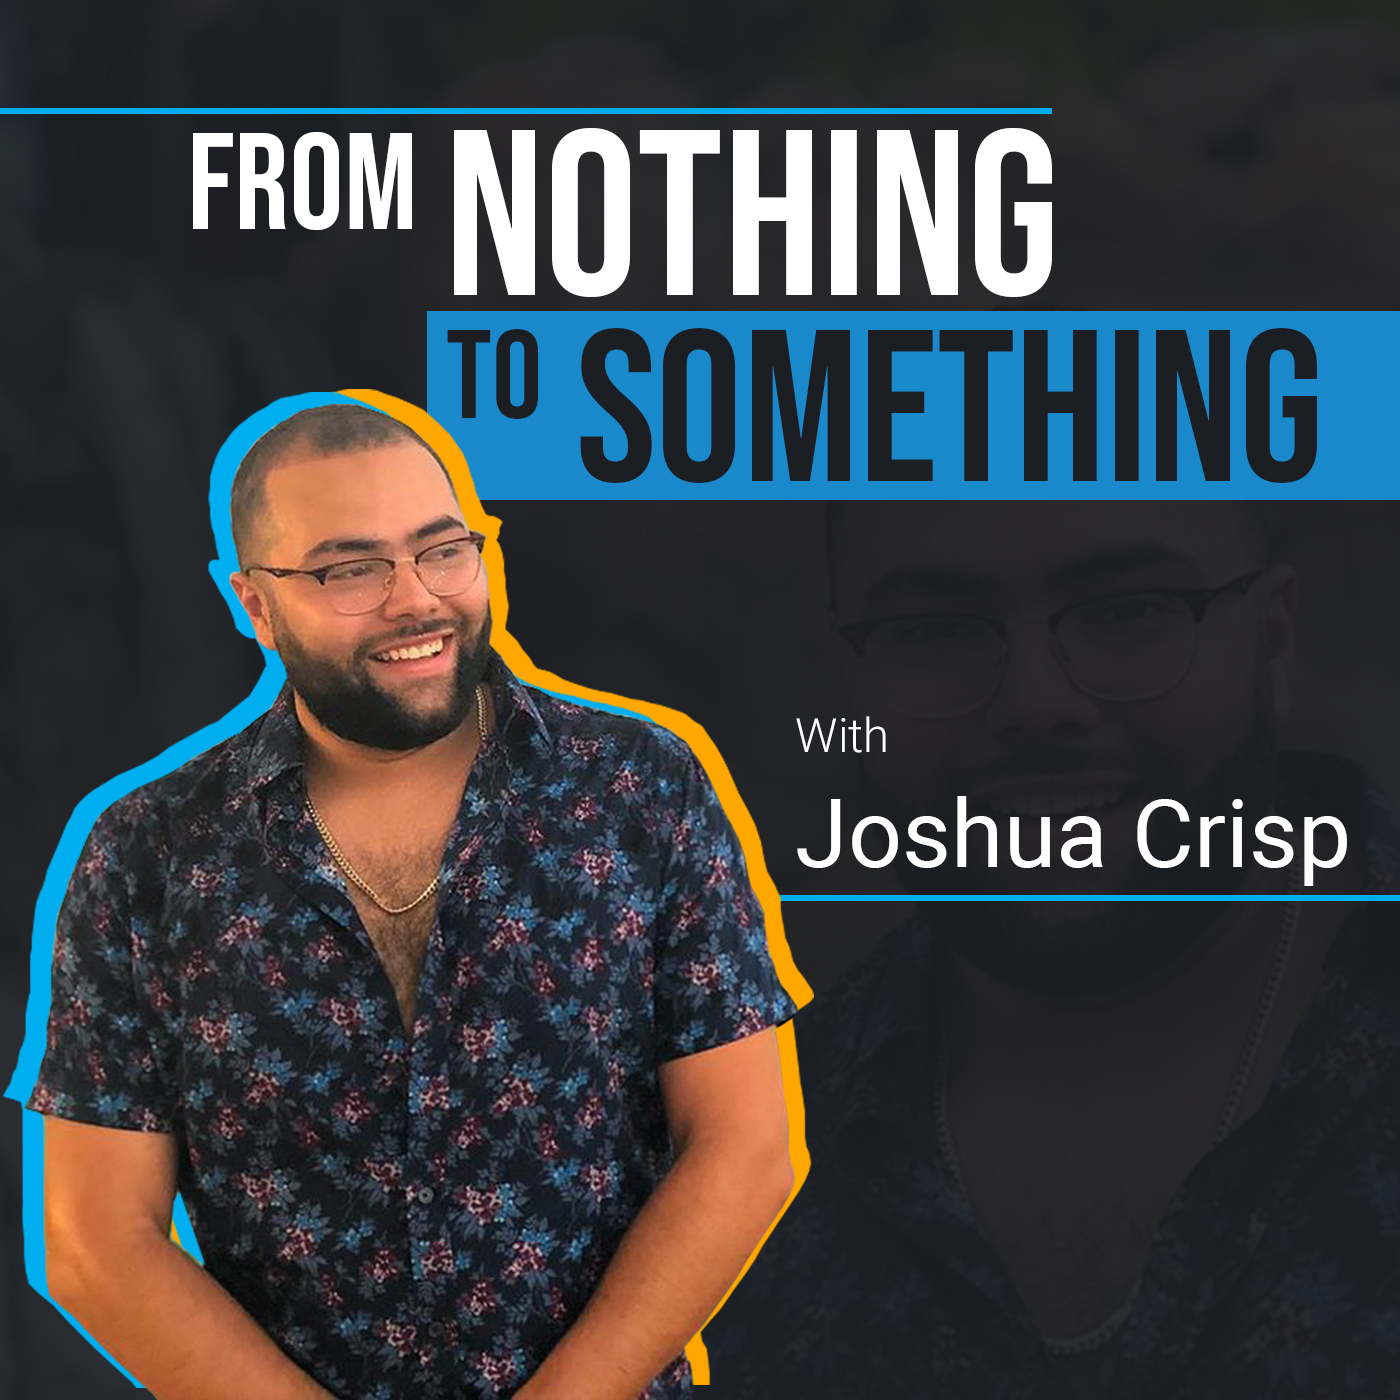 From Nothing To Something With Joshua Crisp